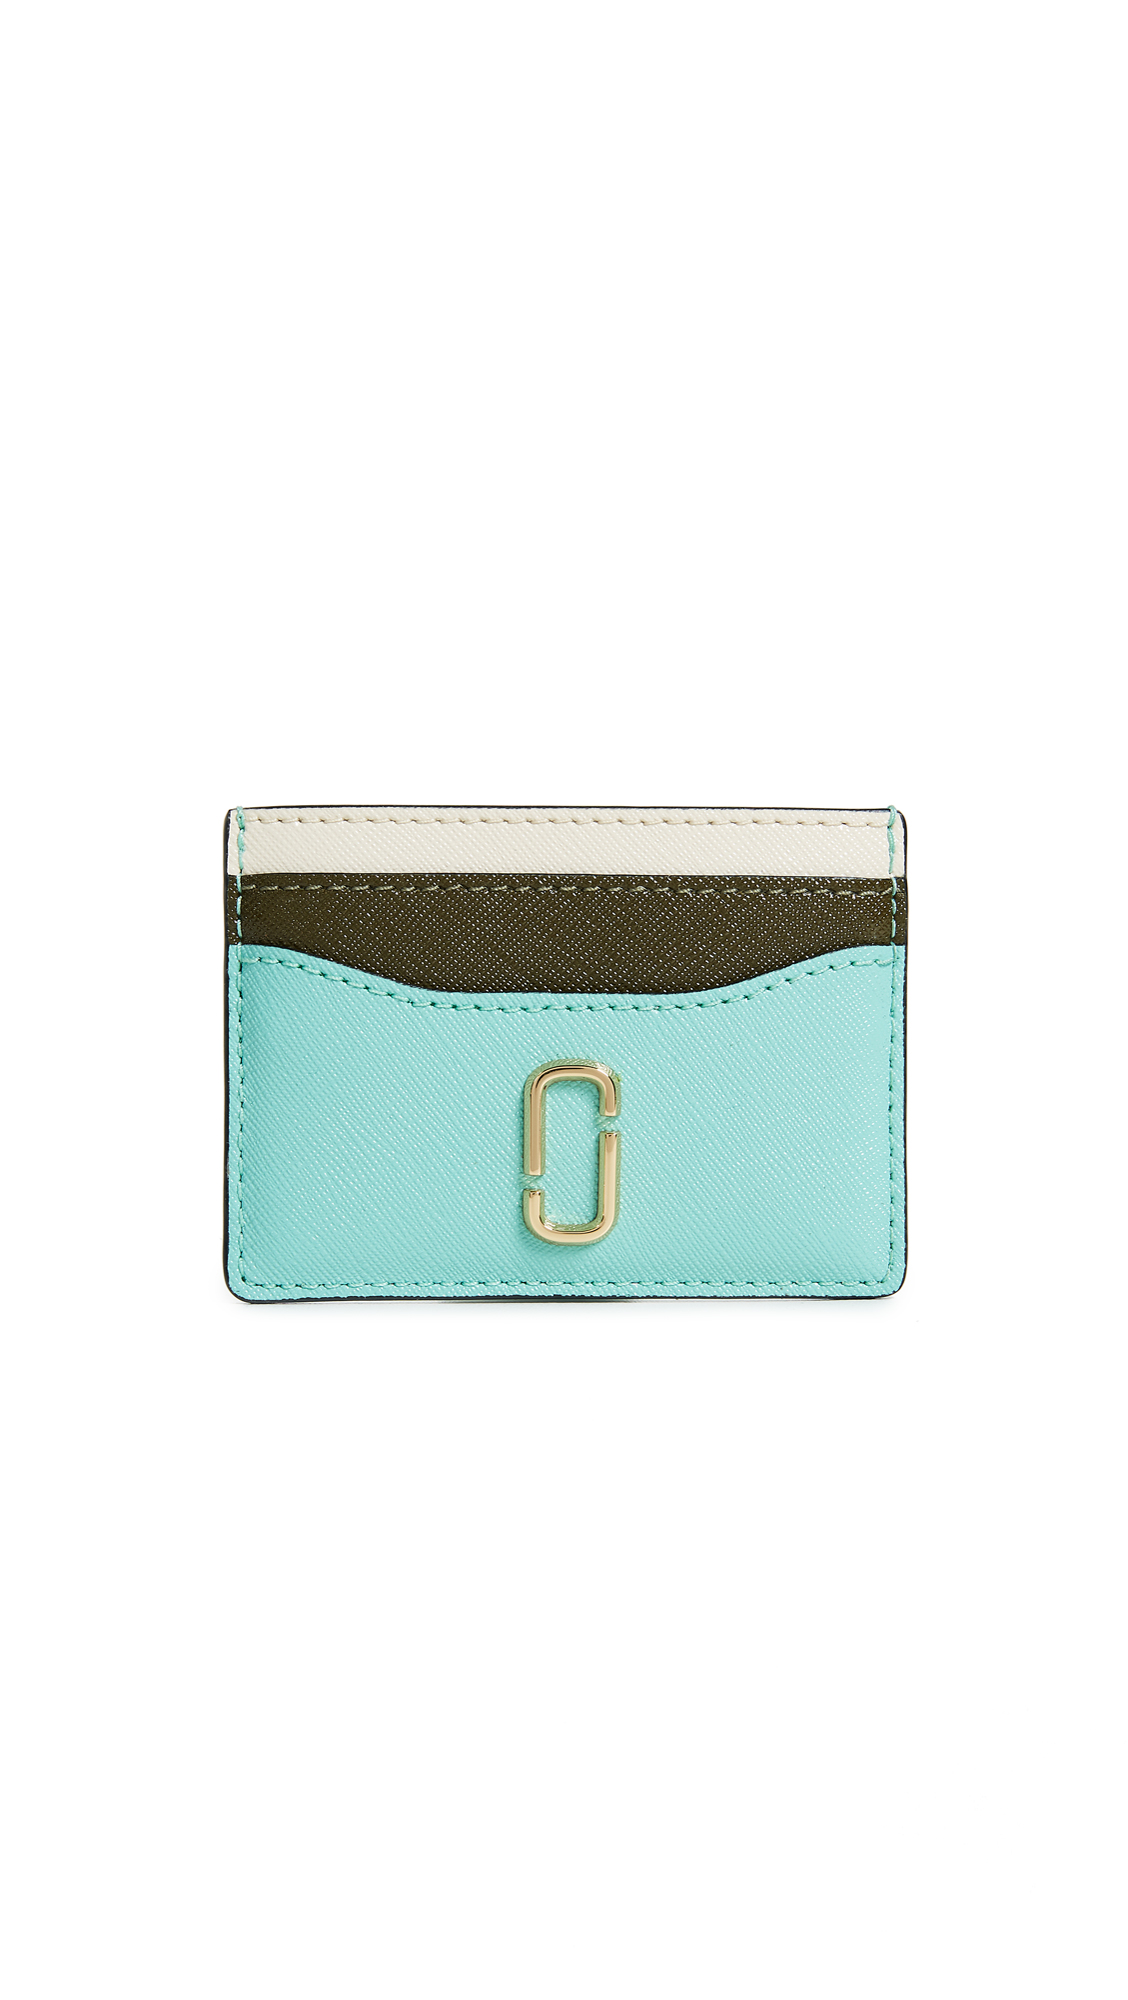 MARC JACOBS Snapshot Card Case, Surf Multi | ModeSens